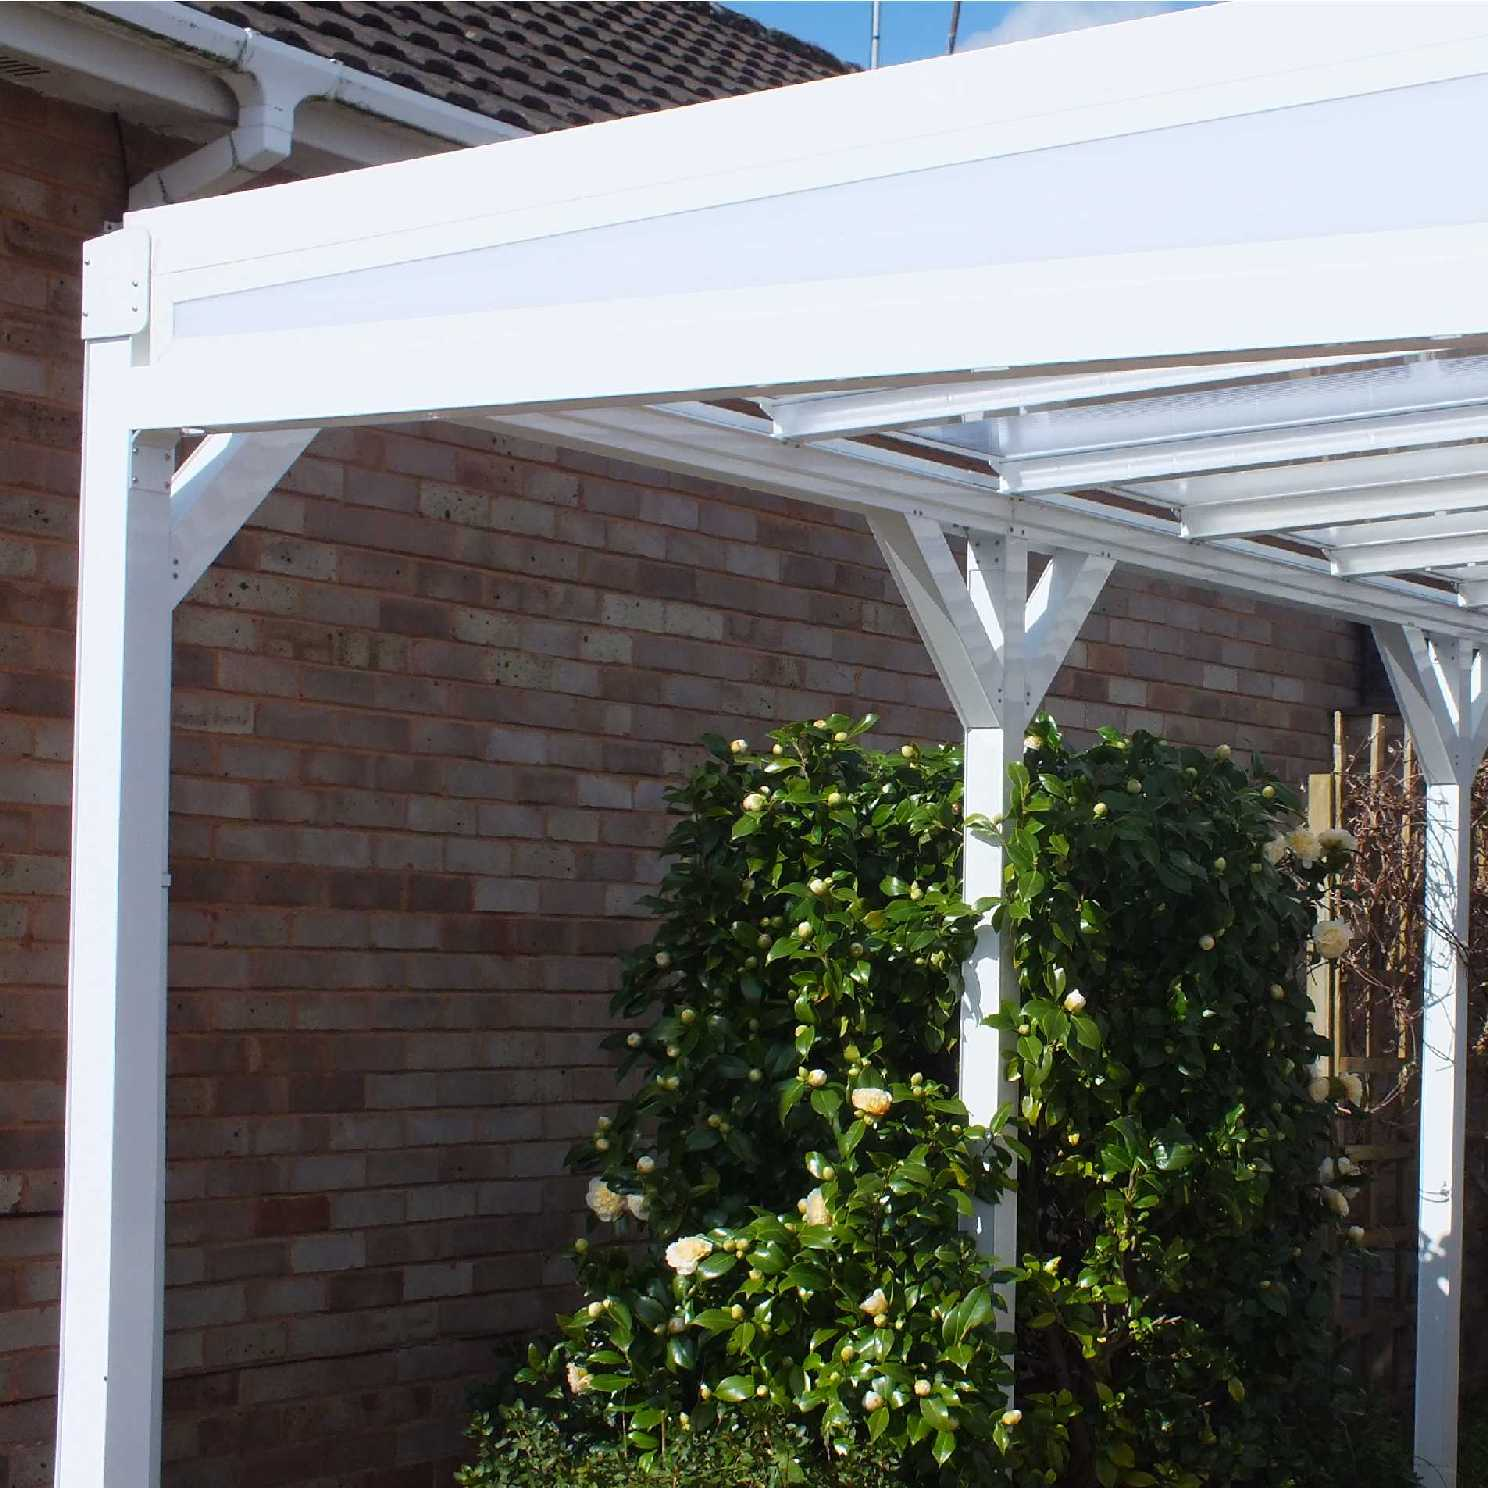 Omega Smart Lean-To Canopy with 16mm Polycarbonate Glazing - 3.1m (W) x 1.5m (P), (2) Supporting Posts from Omega Build